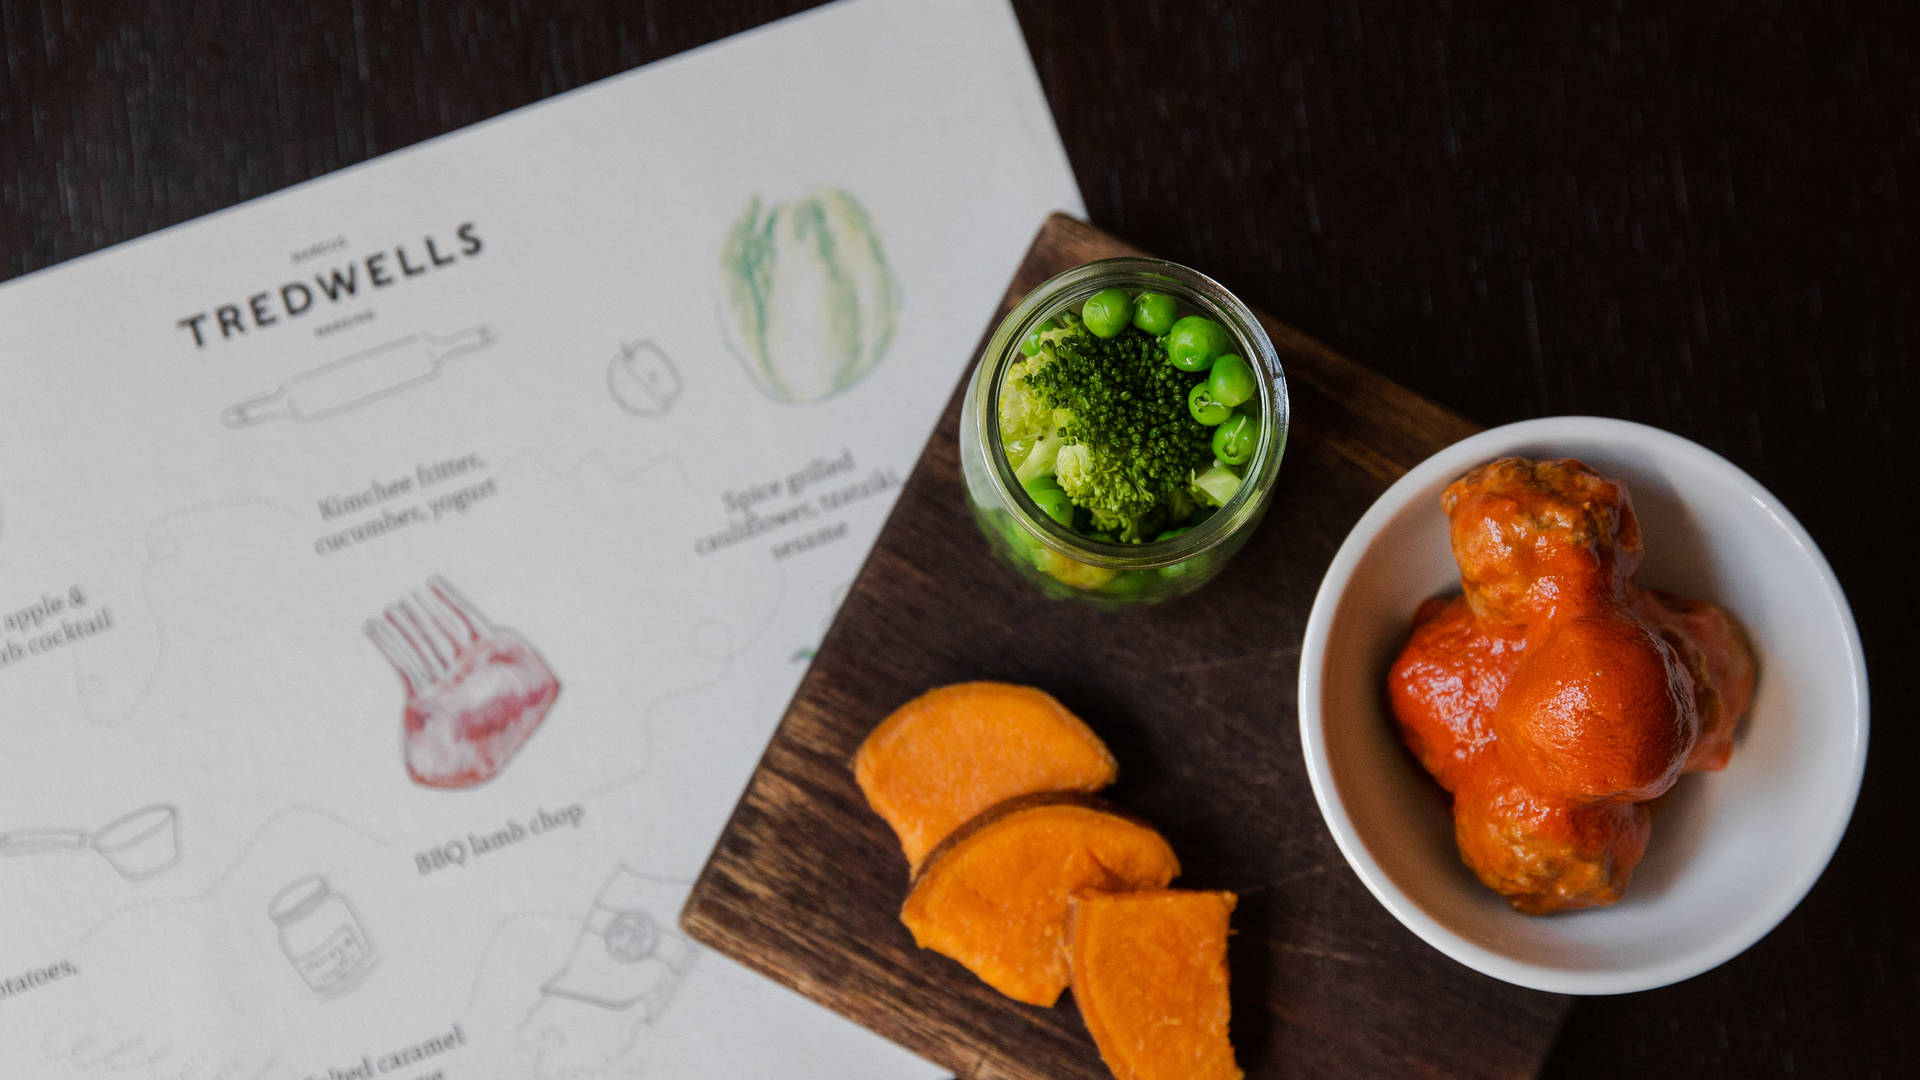 Tredwells London family friendly dining